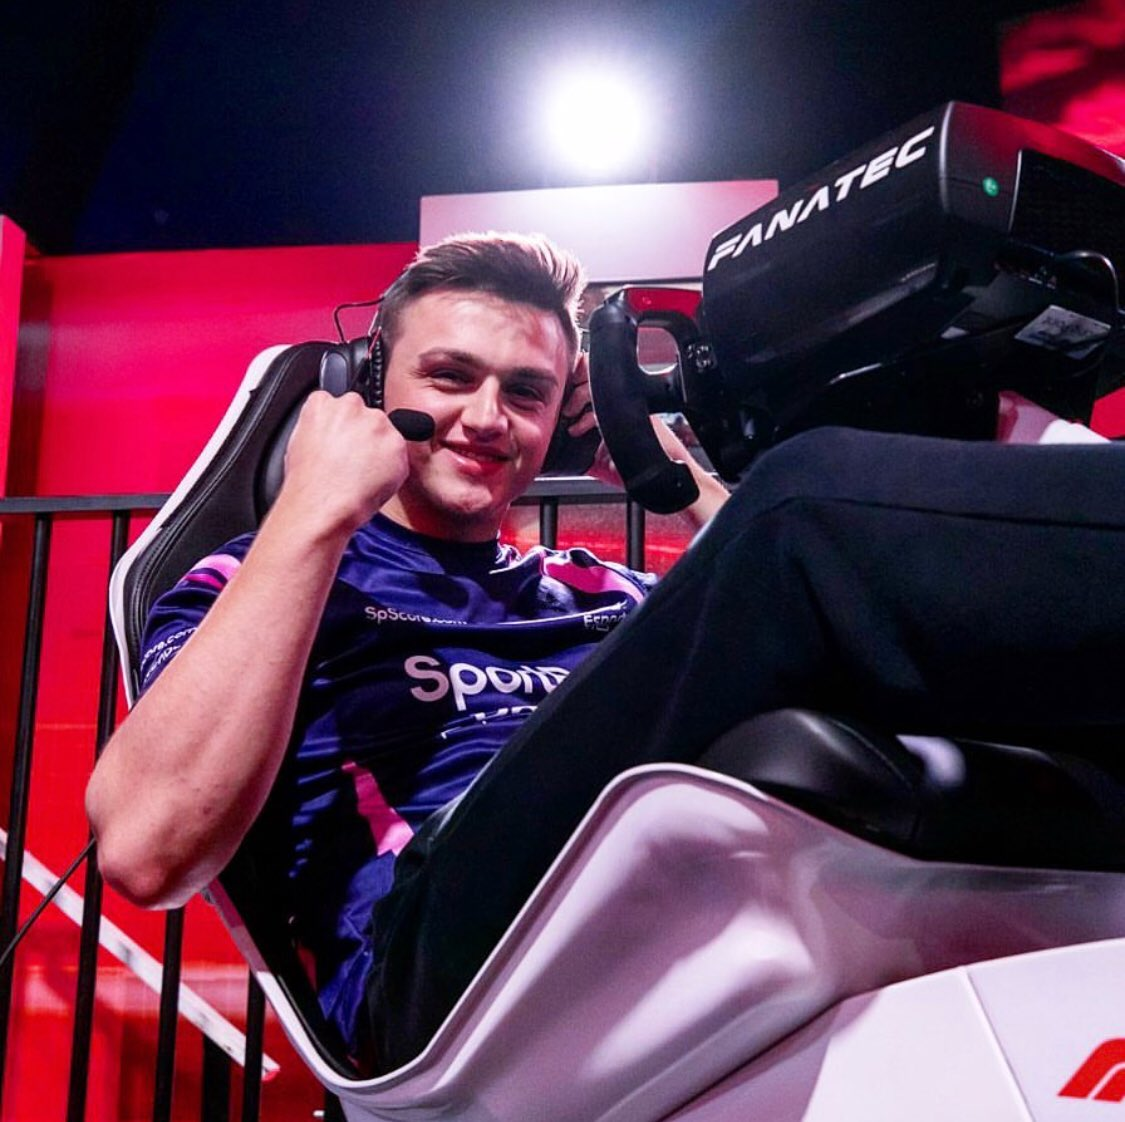 #MondayMotivation #f1esports